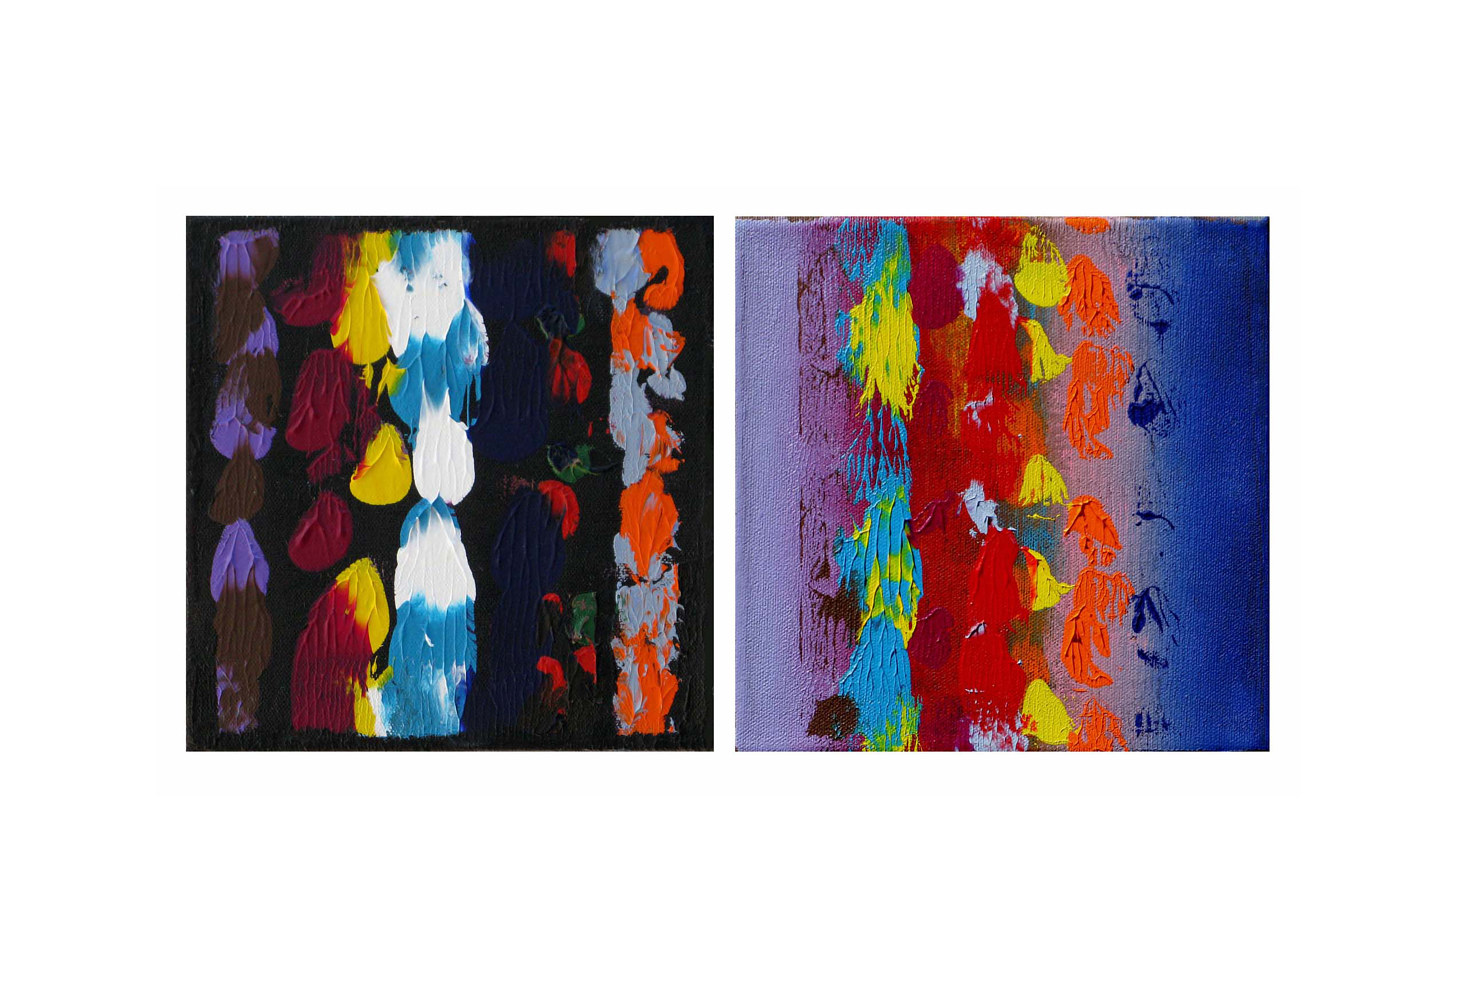 Acrylic painting Color Storm Views III, 8x8 inches each by Hooshang Khorasani